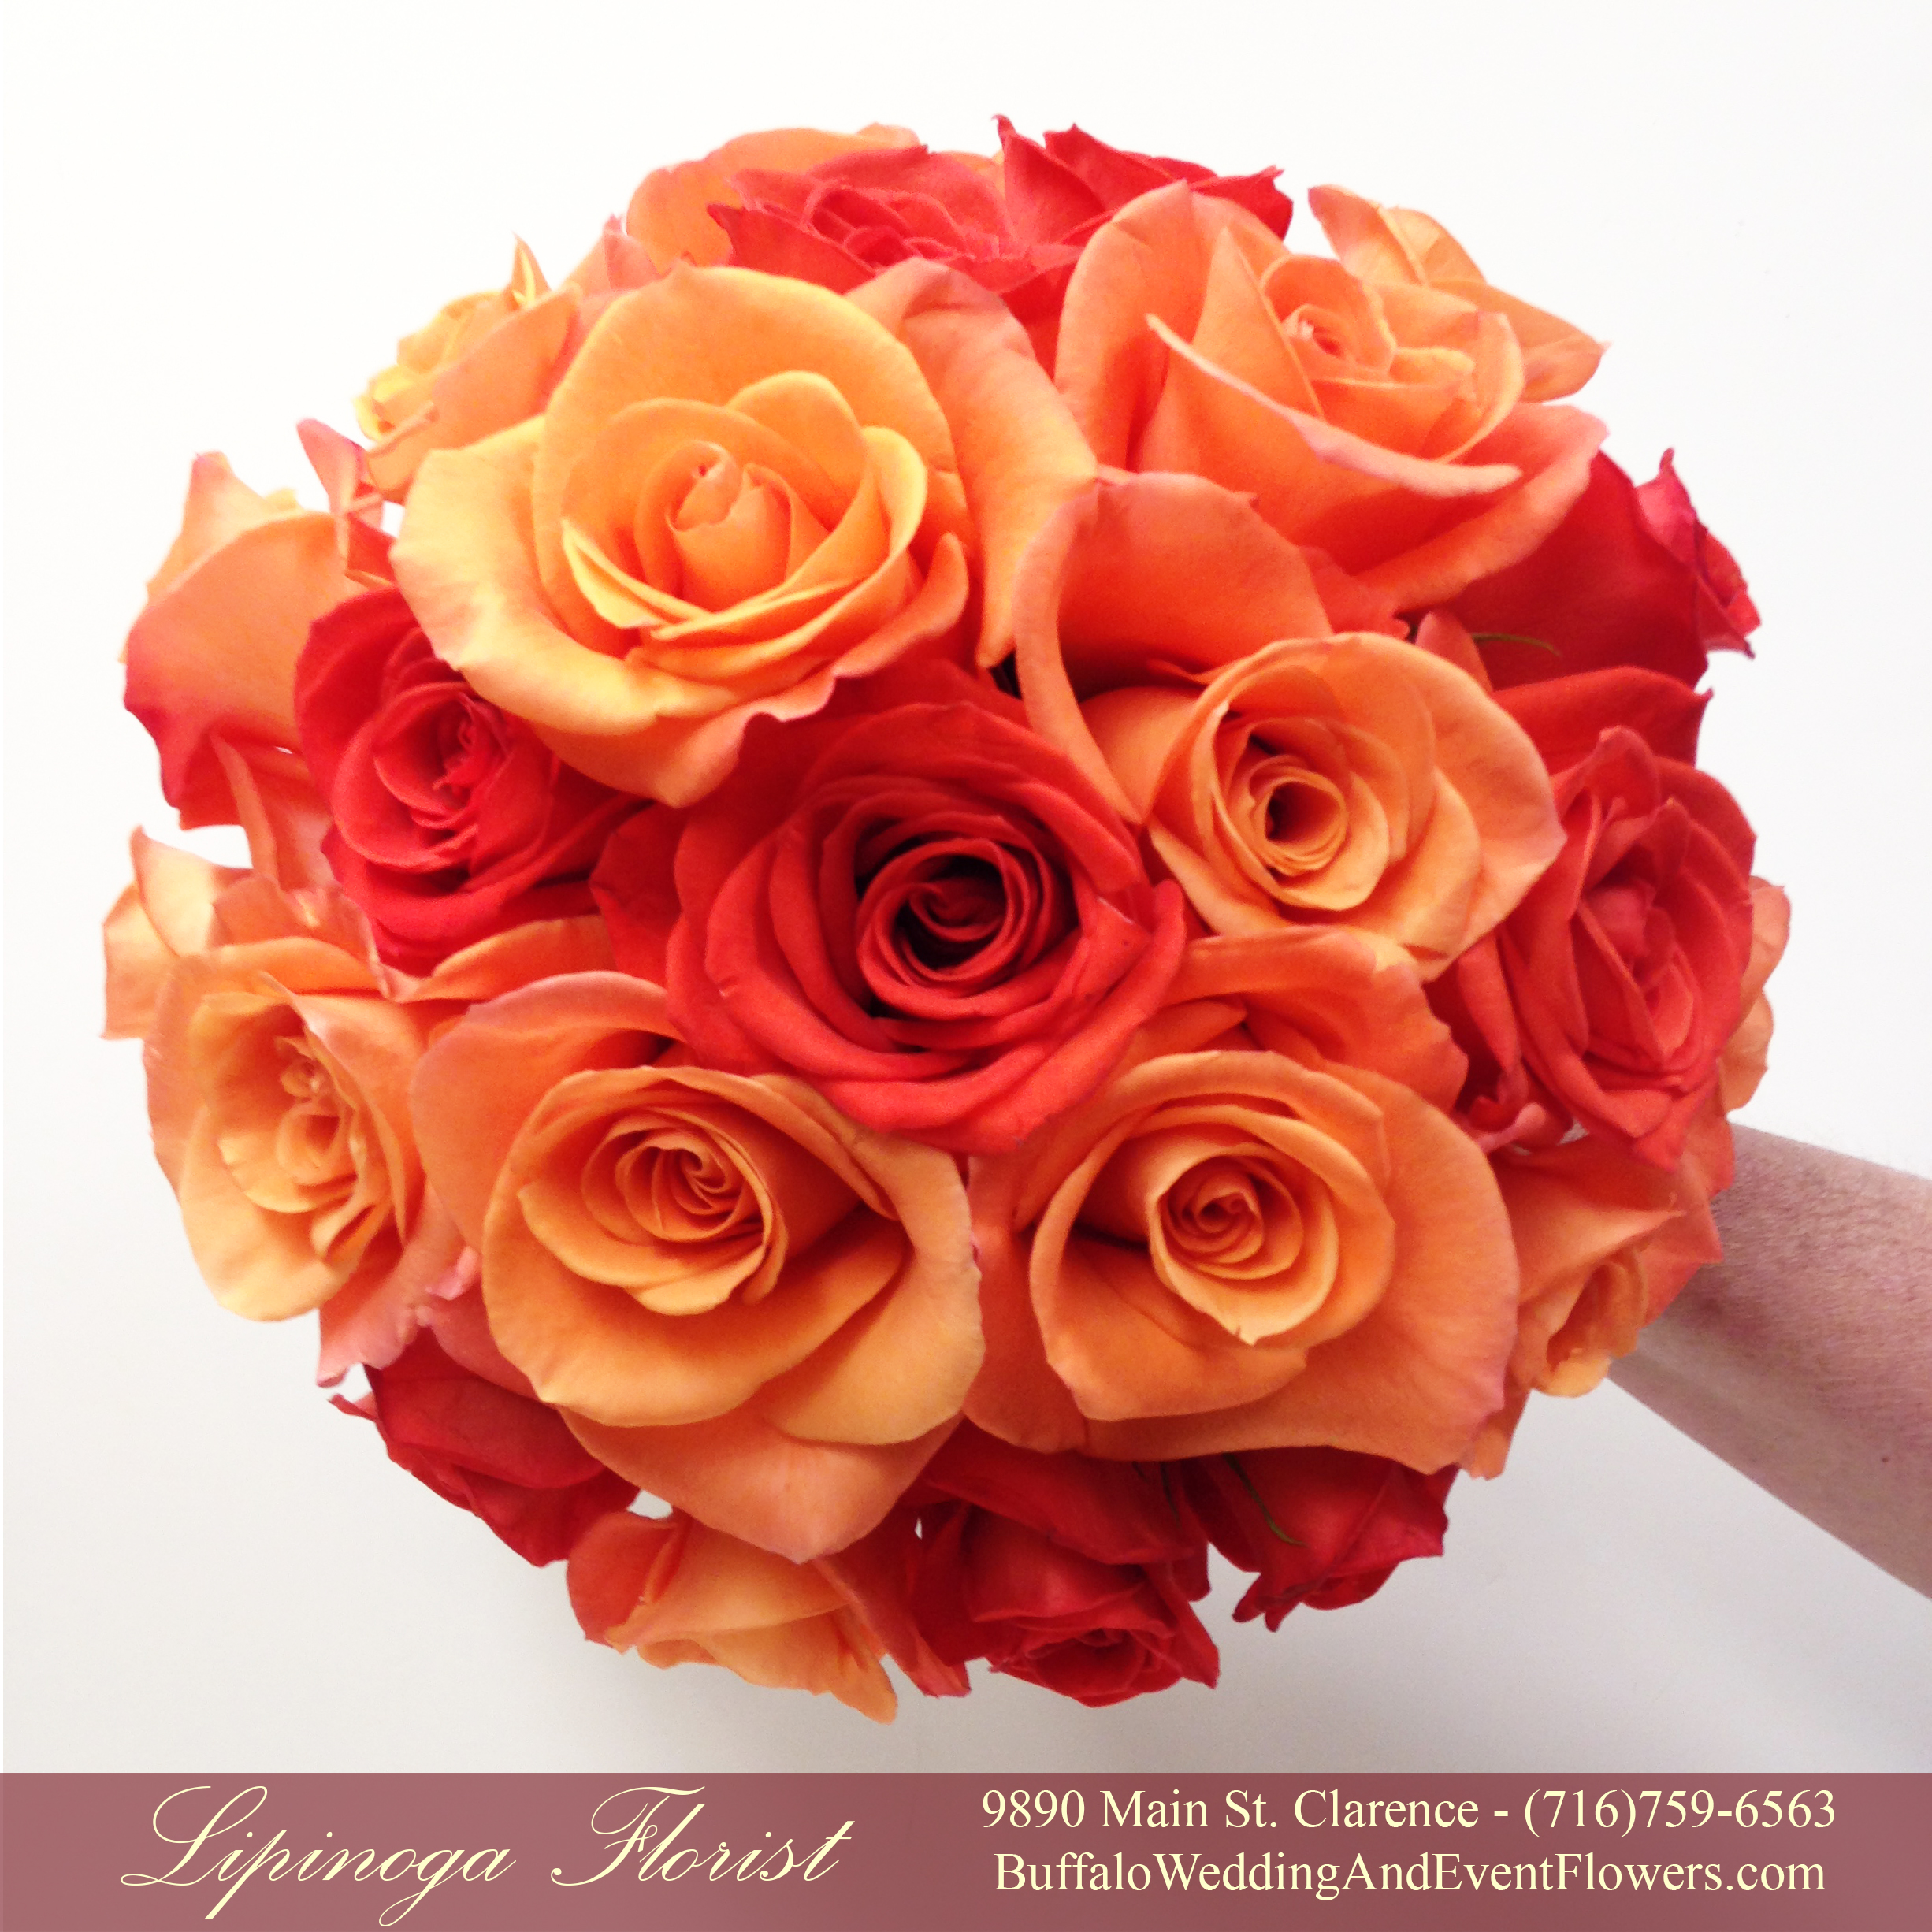 coral orange peach bridal bouquets buffalo wedding event flowers by lipinoga florist. Black Bedroom Furniture Sets. Home Design Ideas